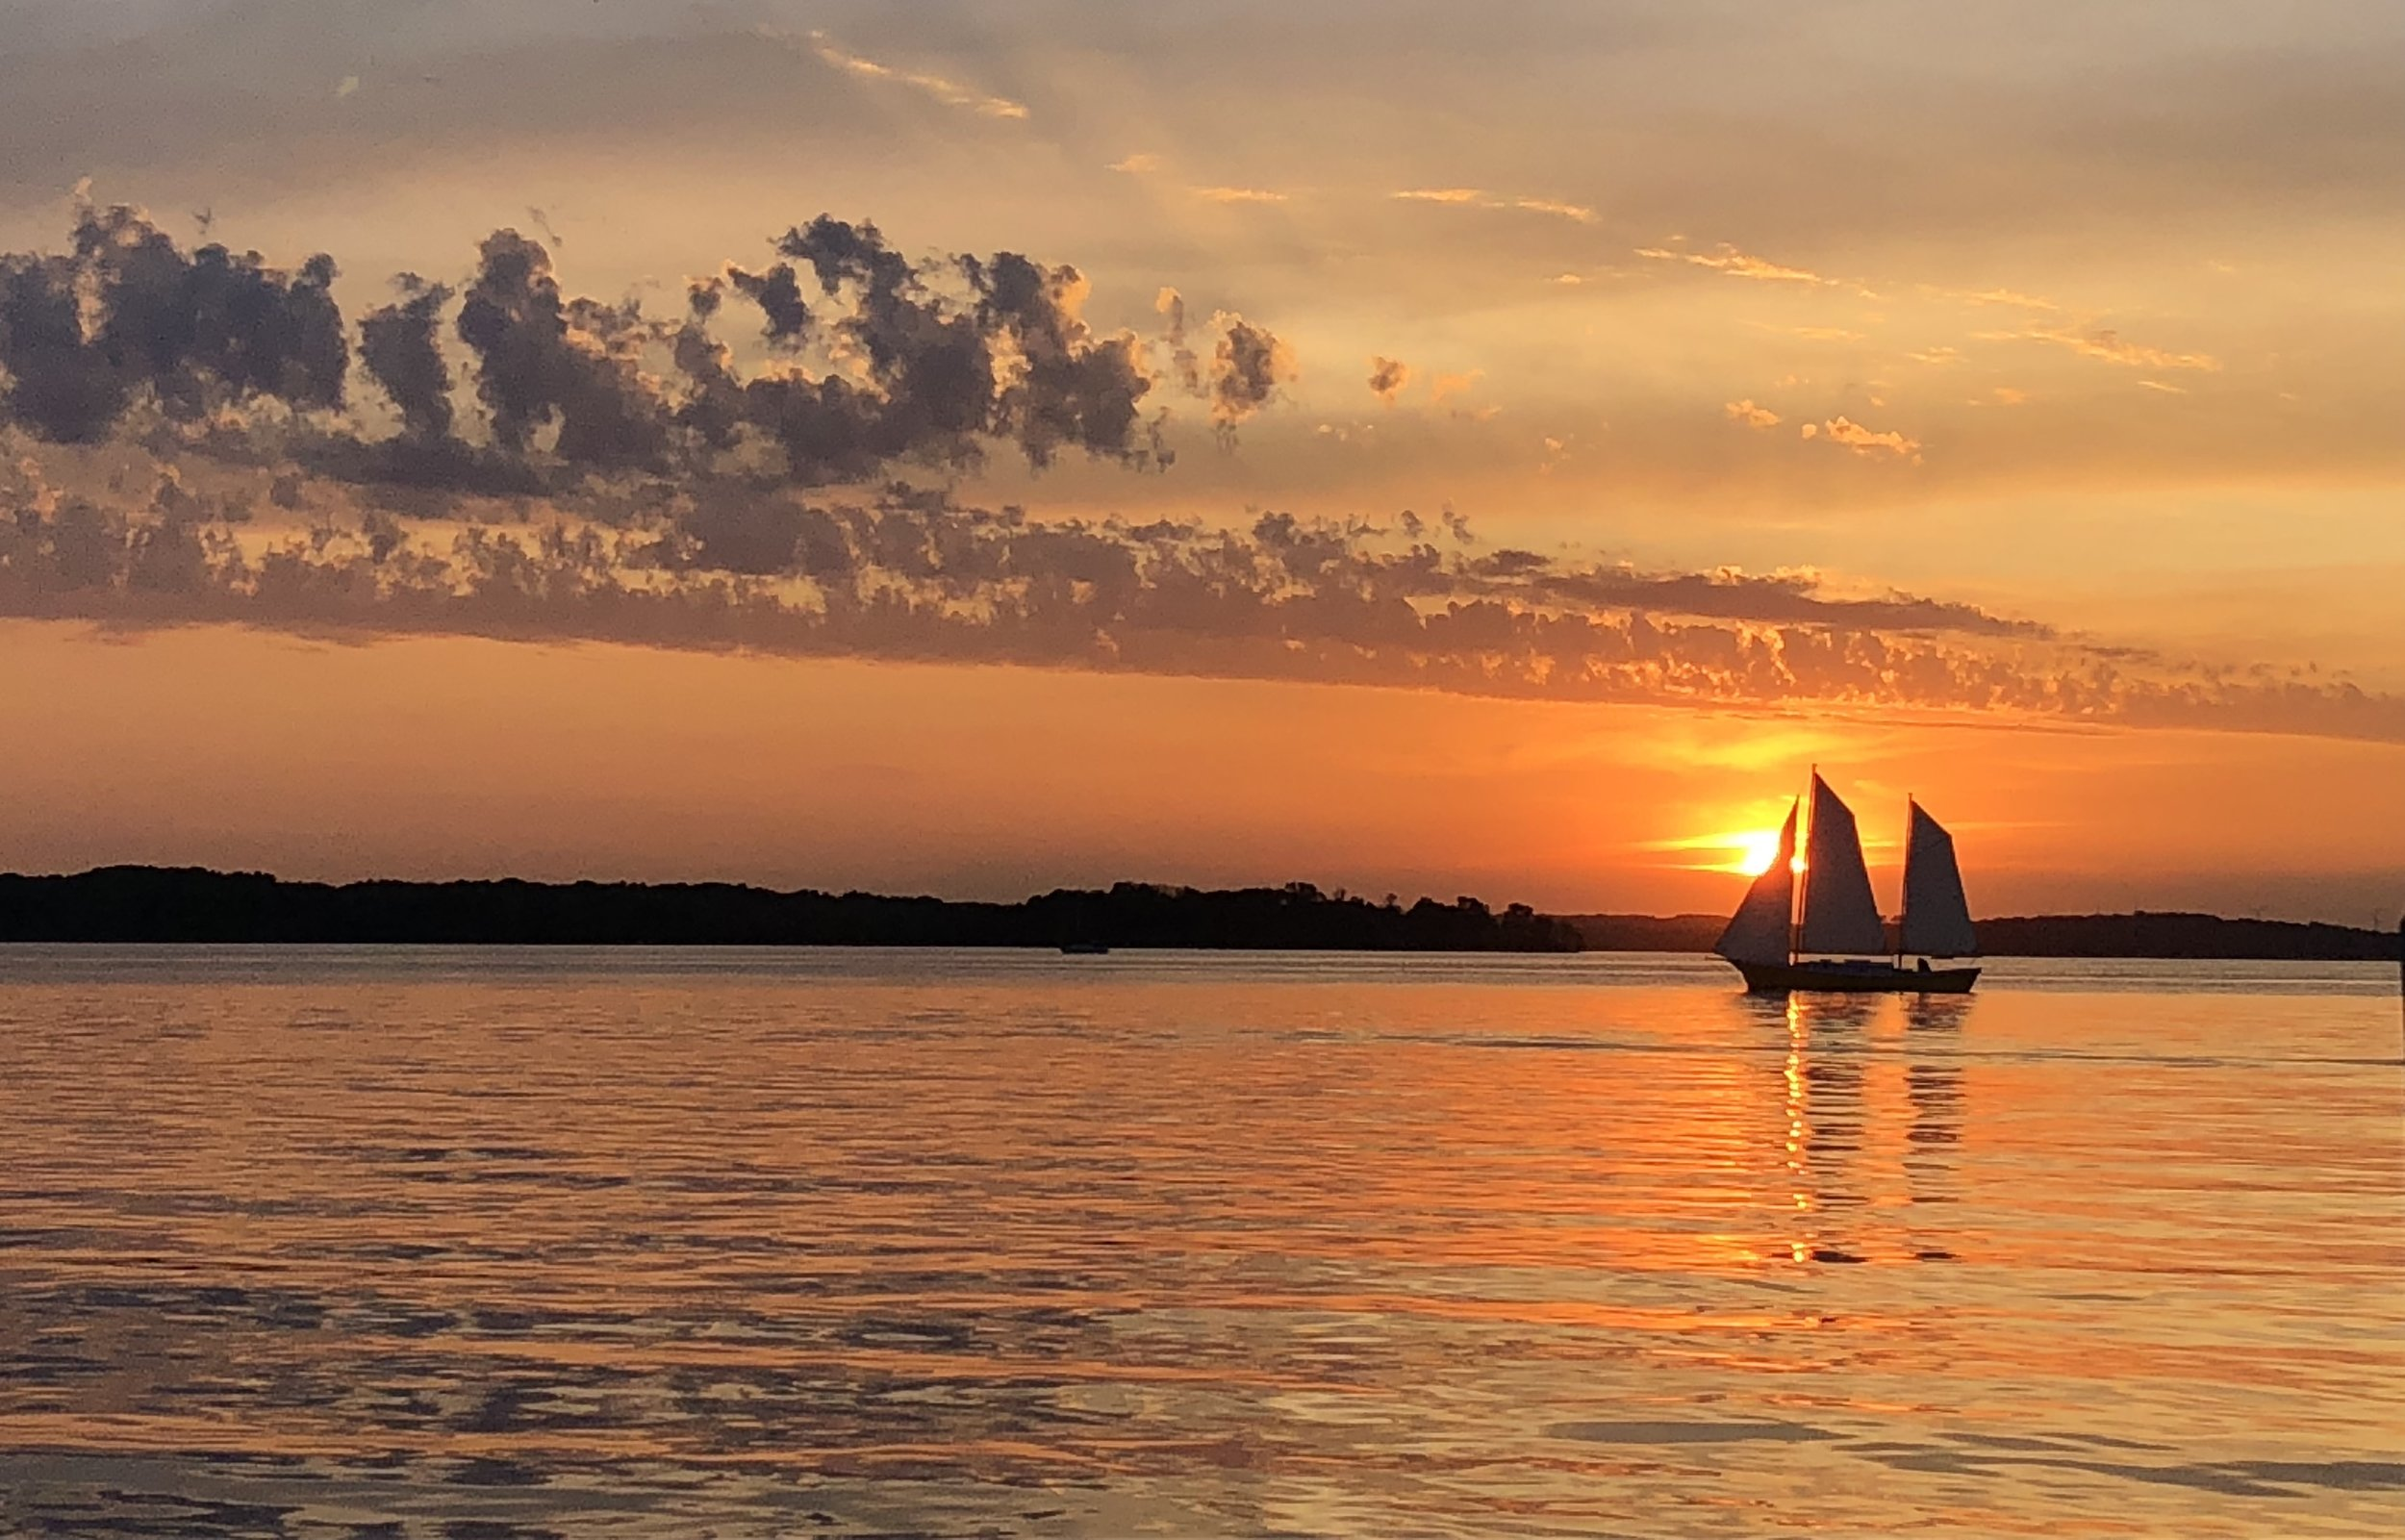 Sunset on Lake Mendota in Madison, WI